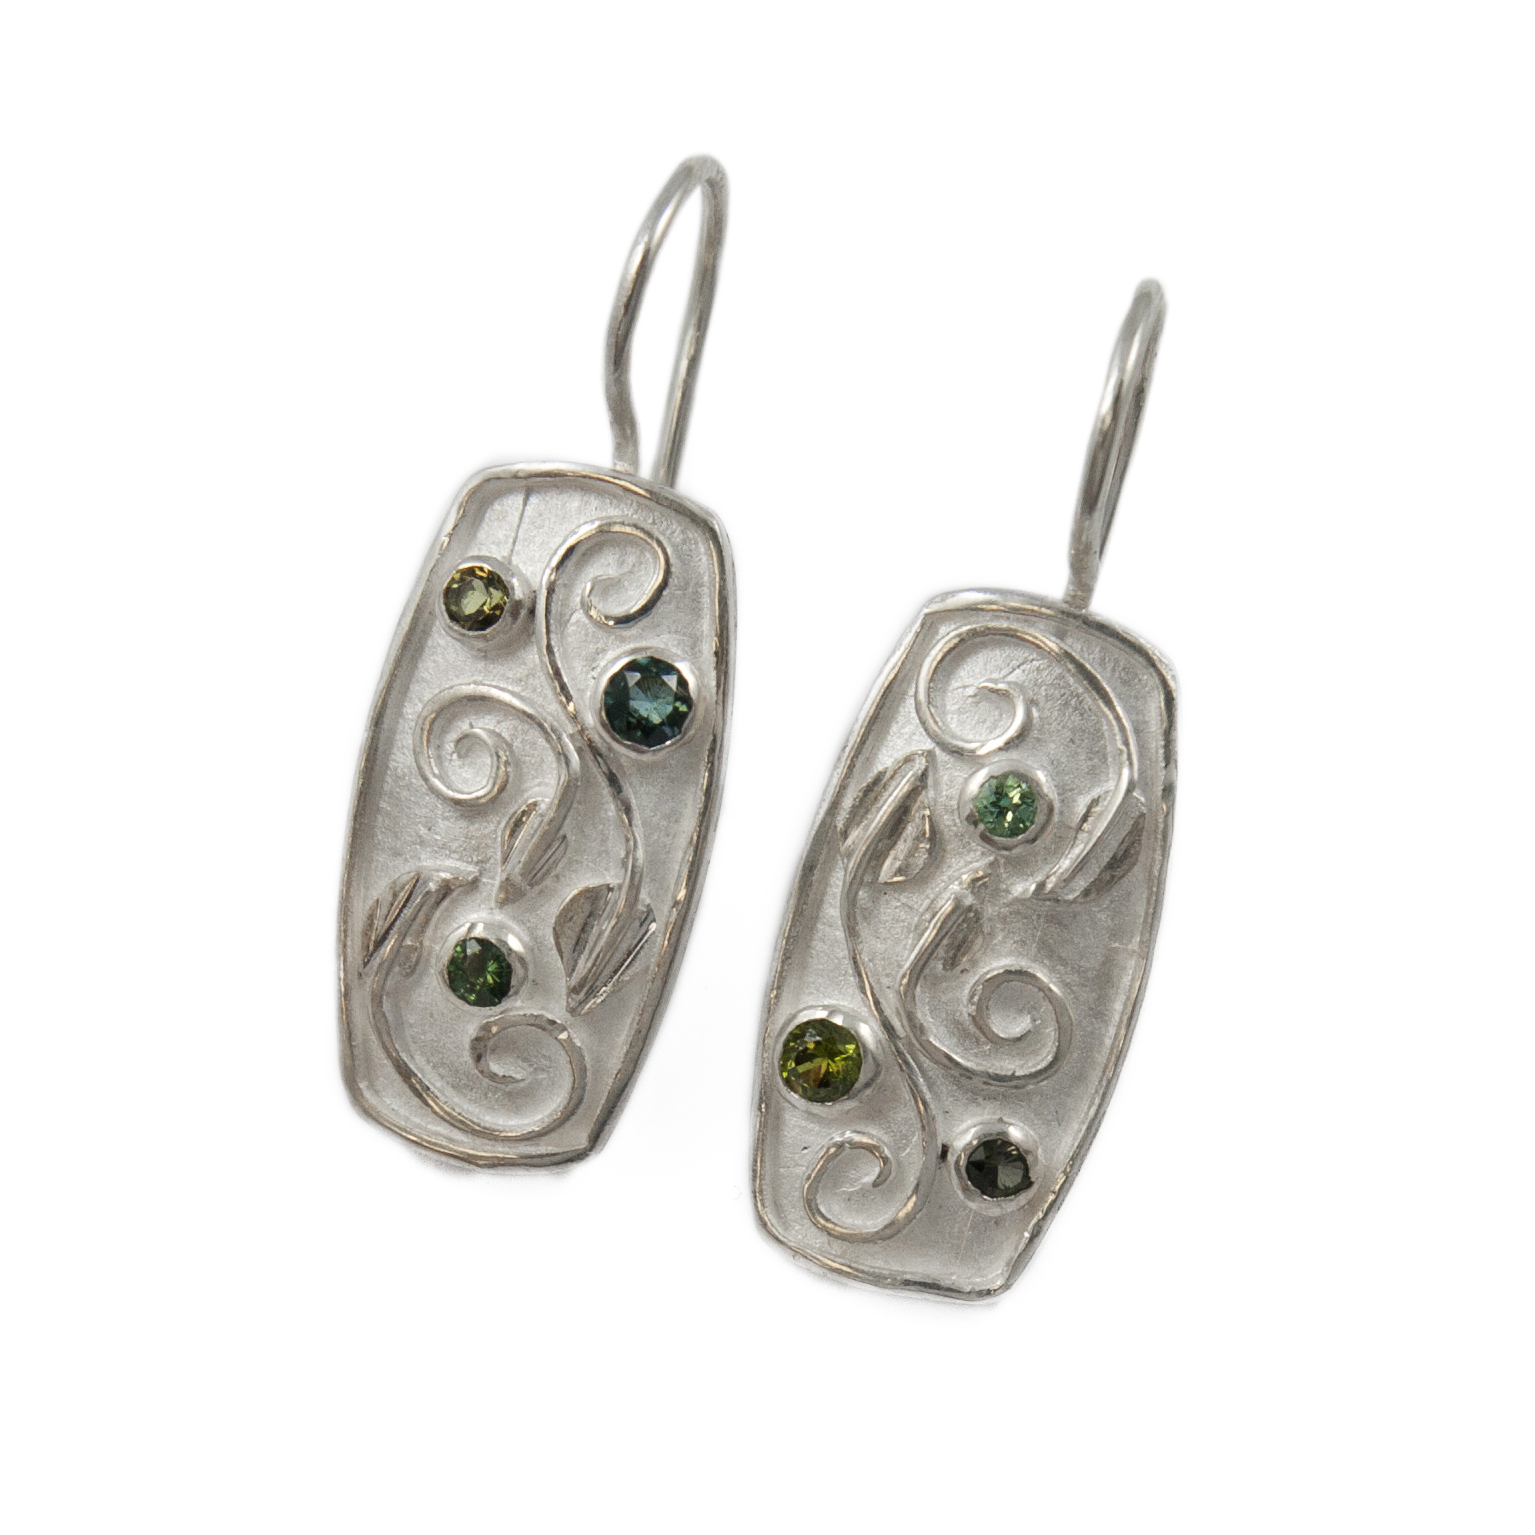 FLORA ss leaves swirl earring green stones EDITED.jpg